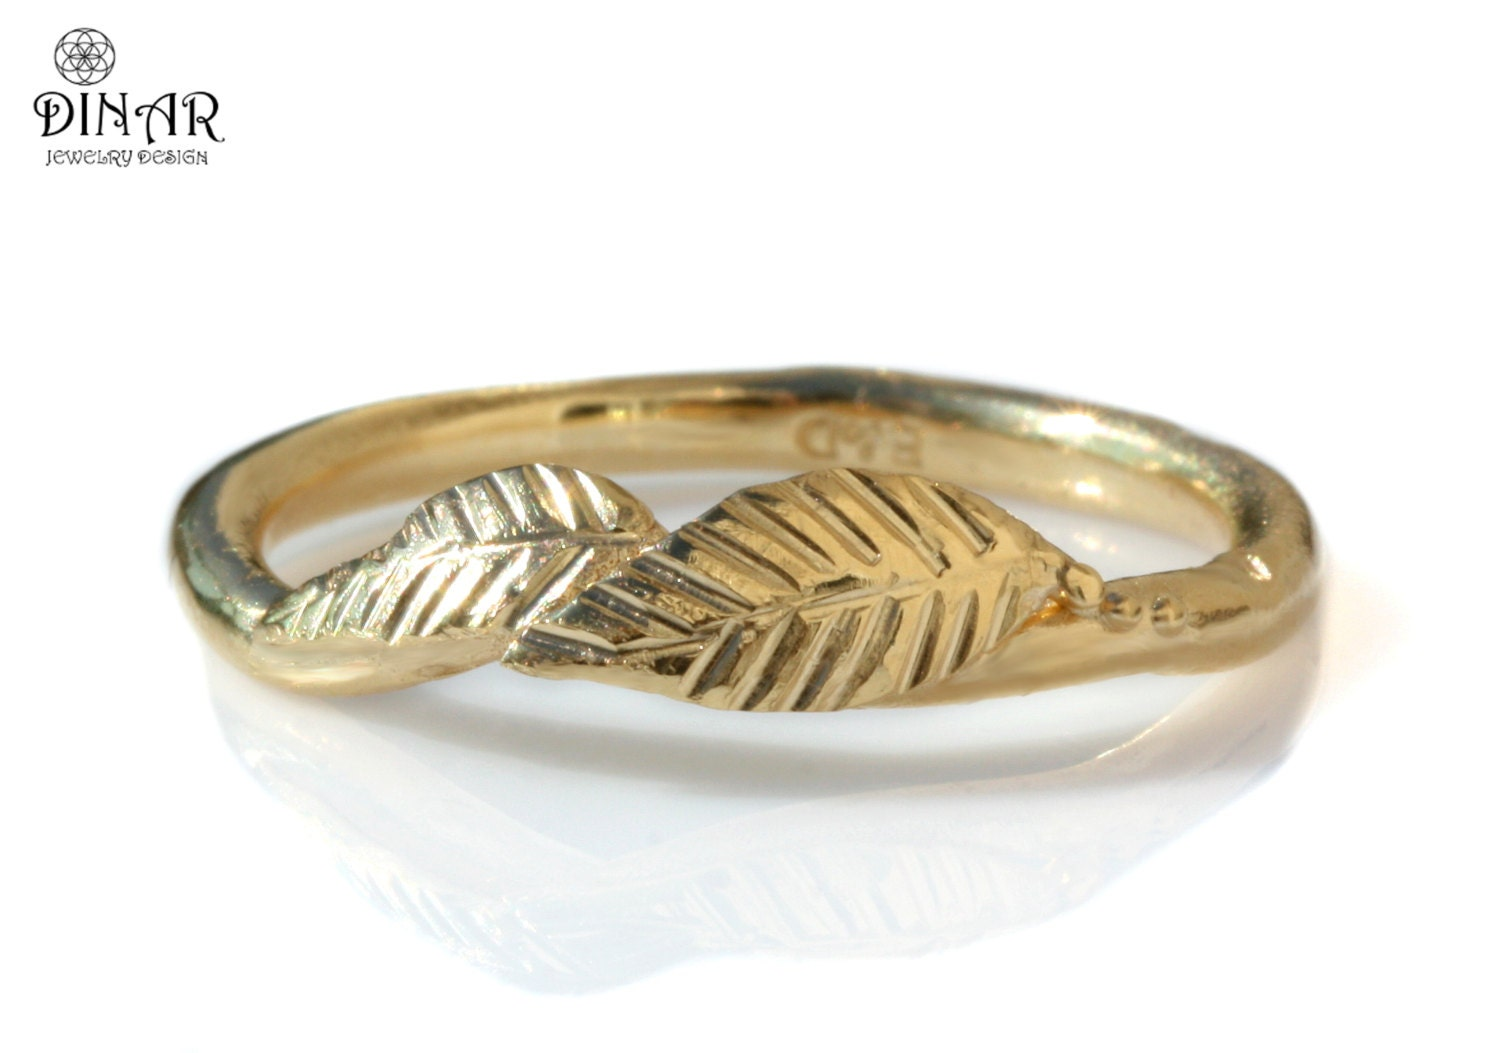 leaf wedding ring 14k yellow gold texture engraved leafs